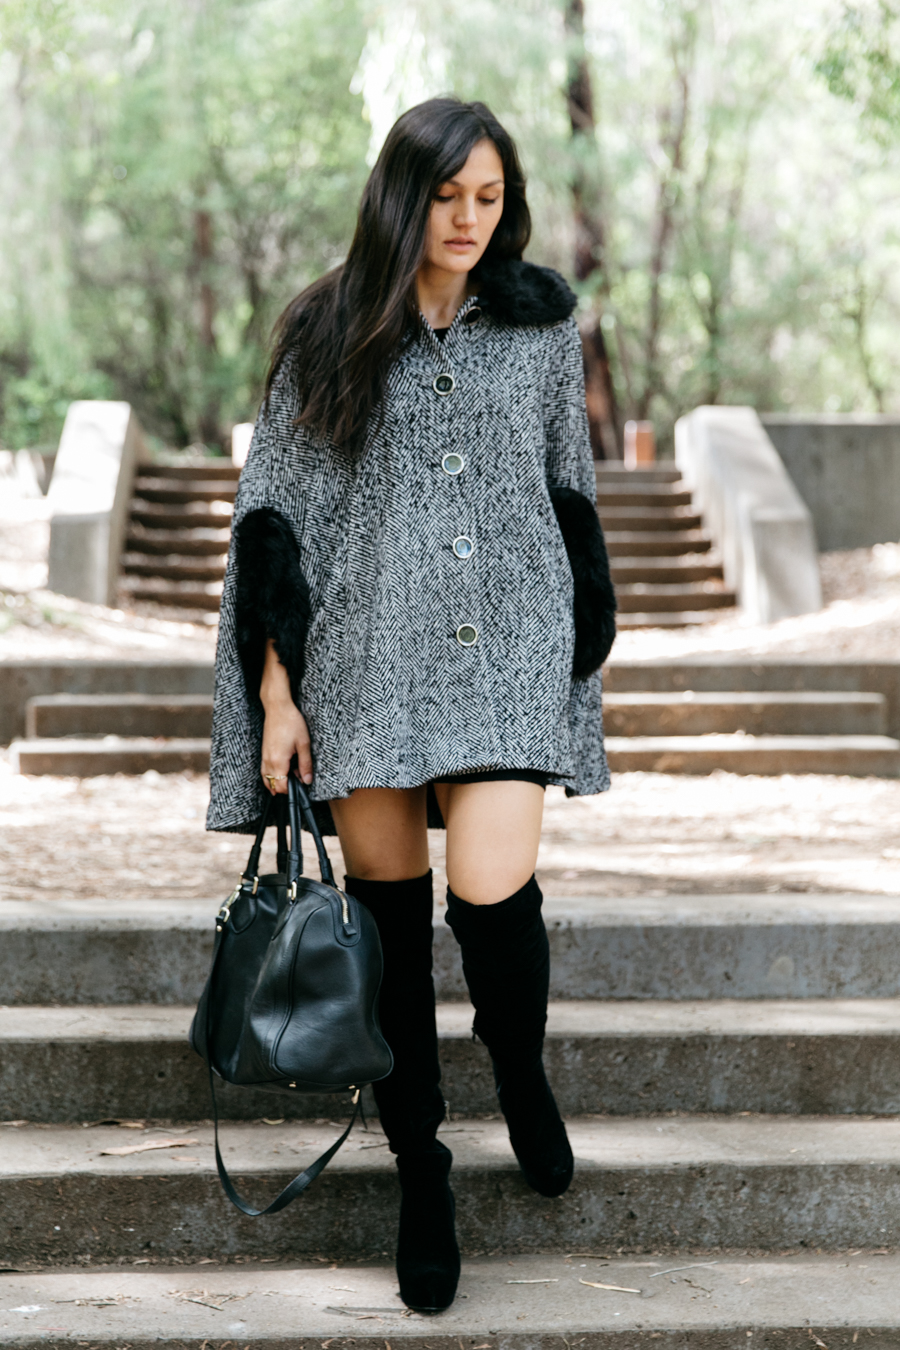 Fur cape with over the knee boots.